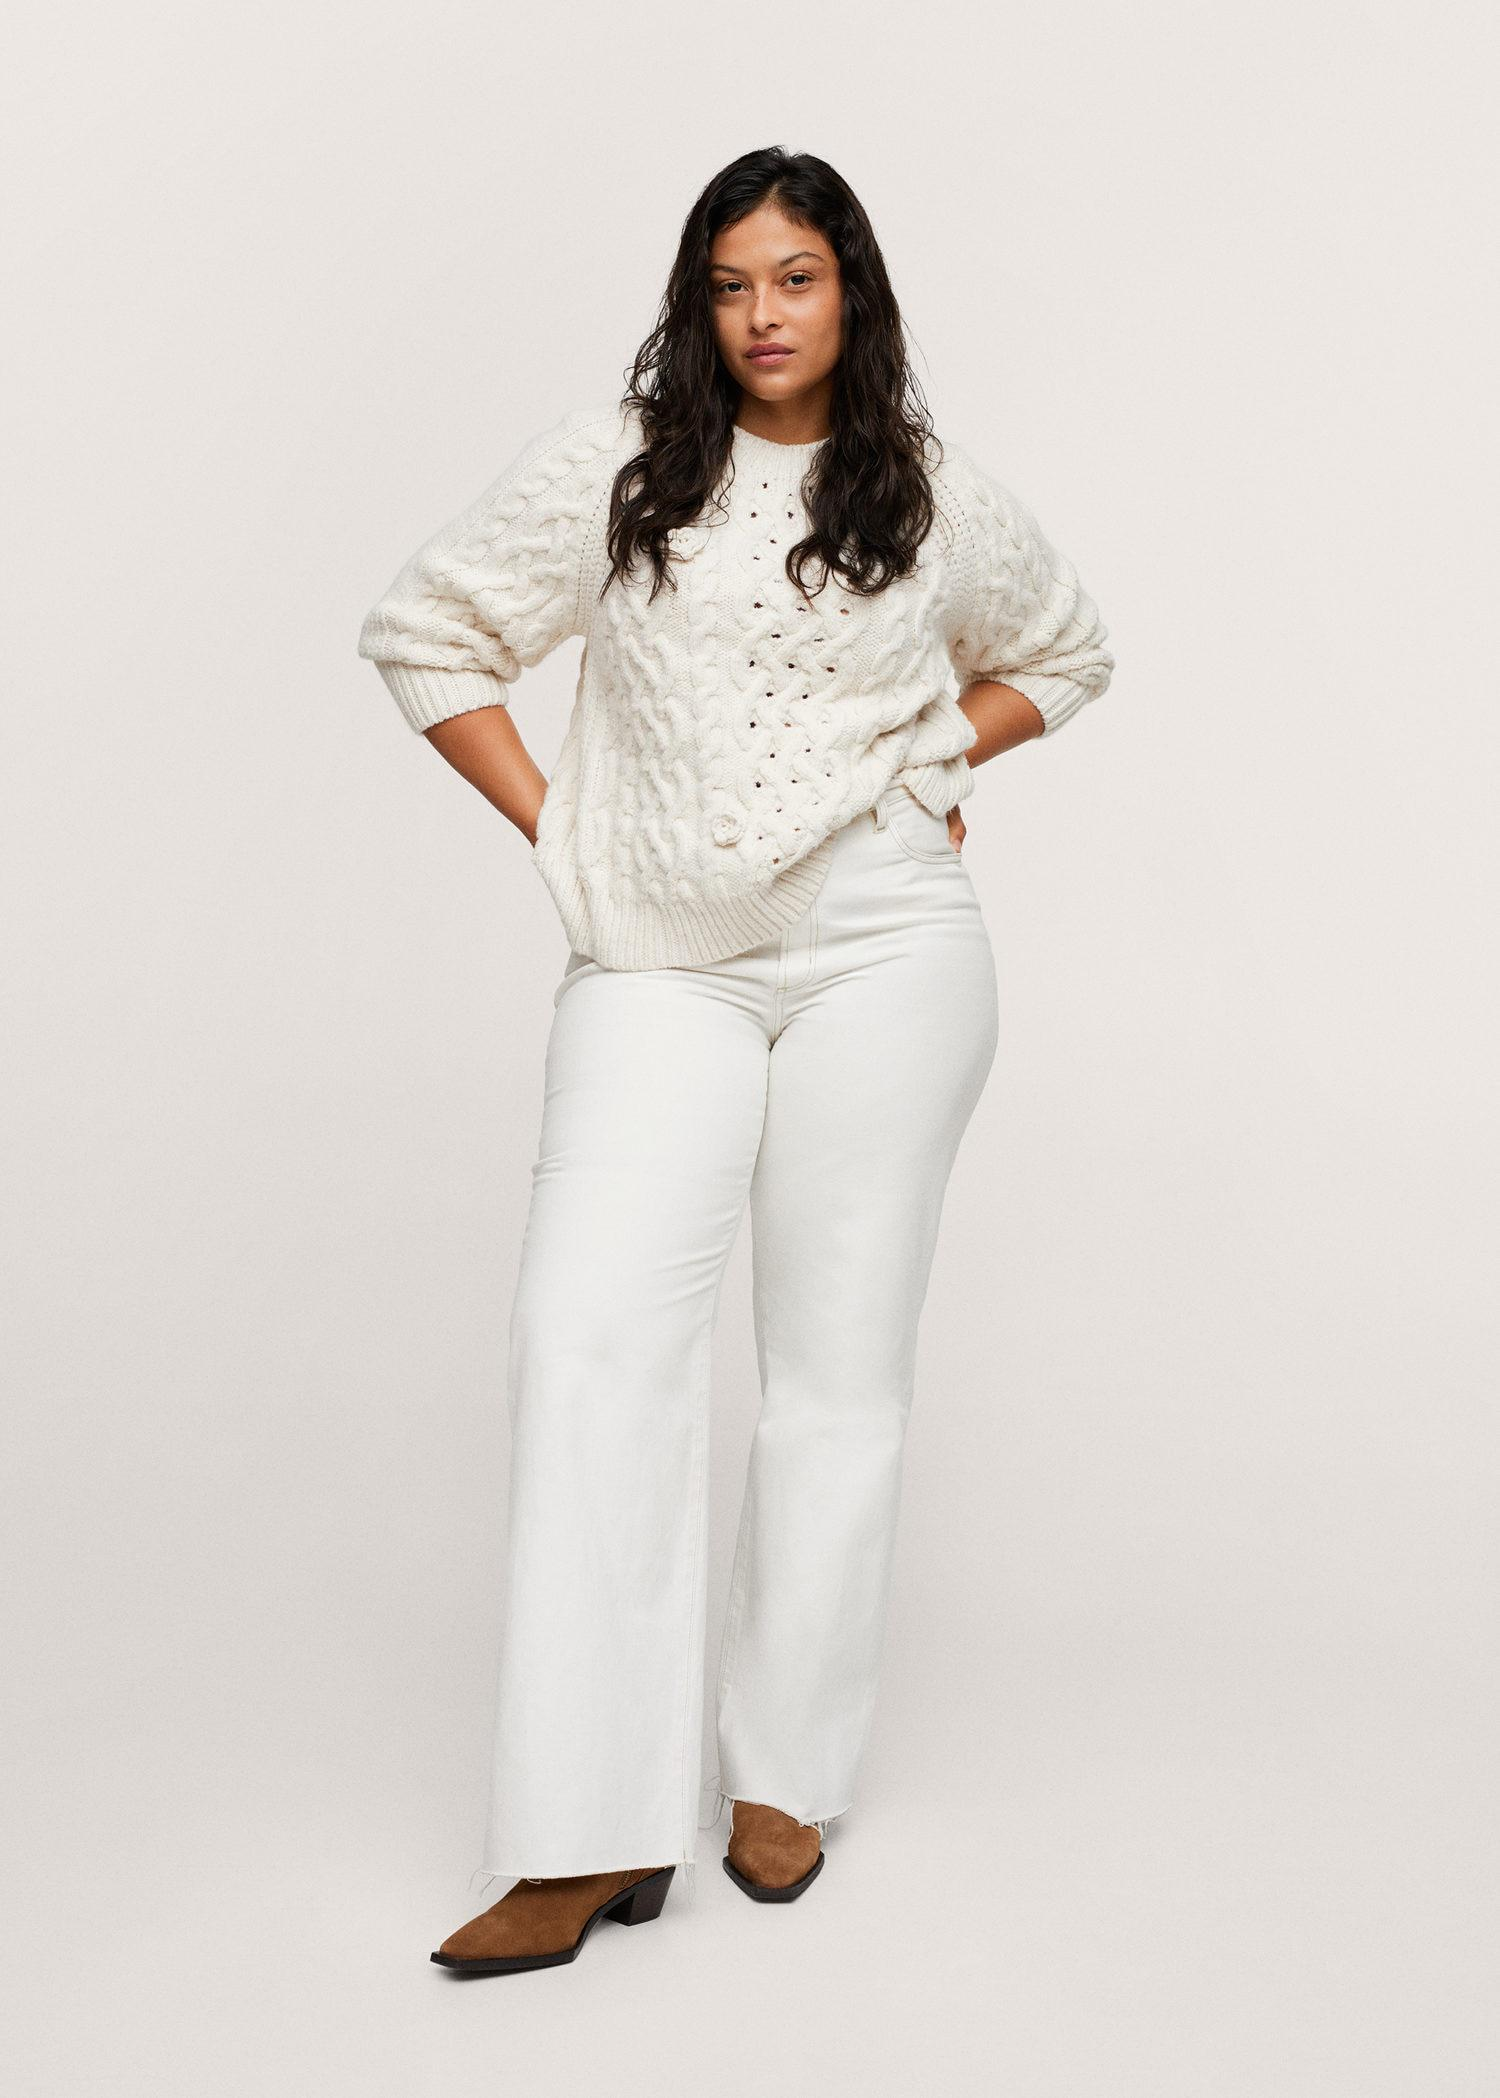 Braided detail knit sweater